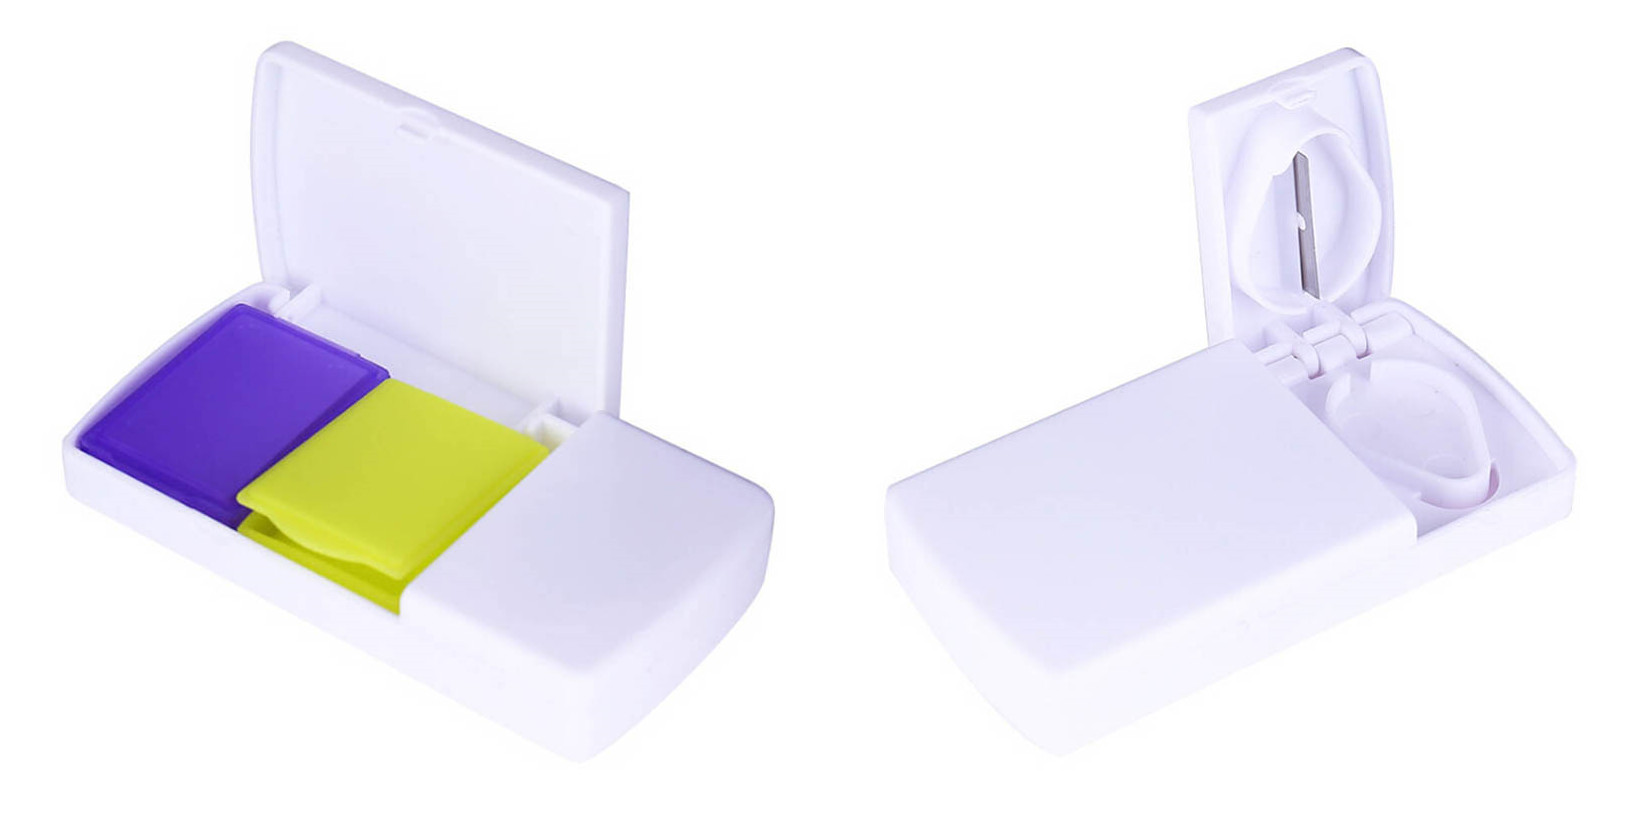 New 1Pc Pill Cases Medicine Splitter Slicer Divide Compartment Tablet Smart Storage Container Case Medicine Tablet Cutter